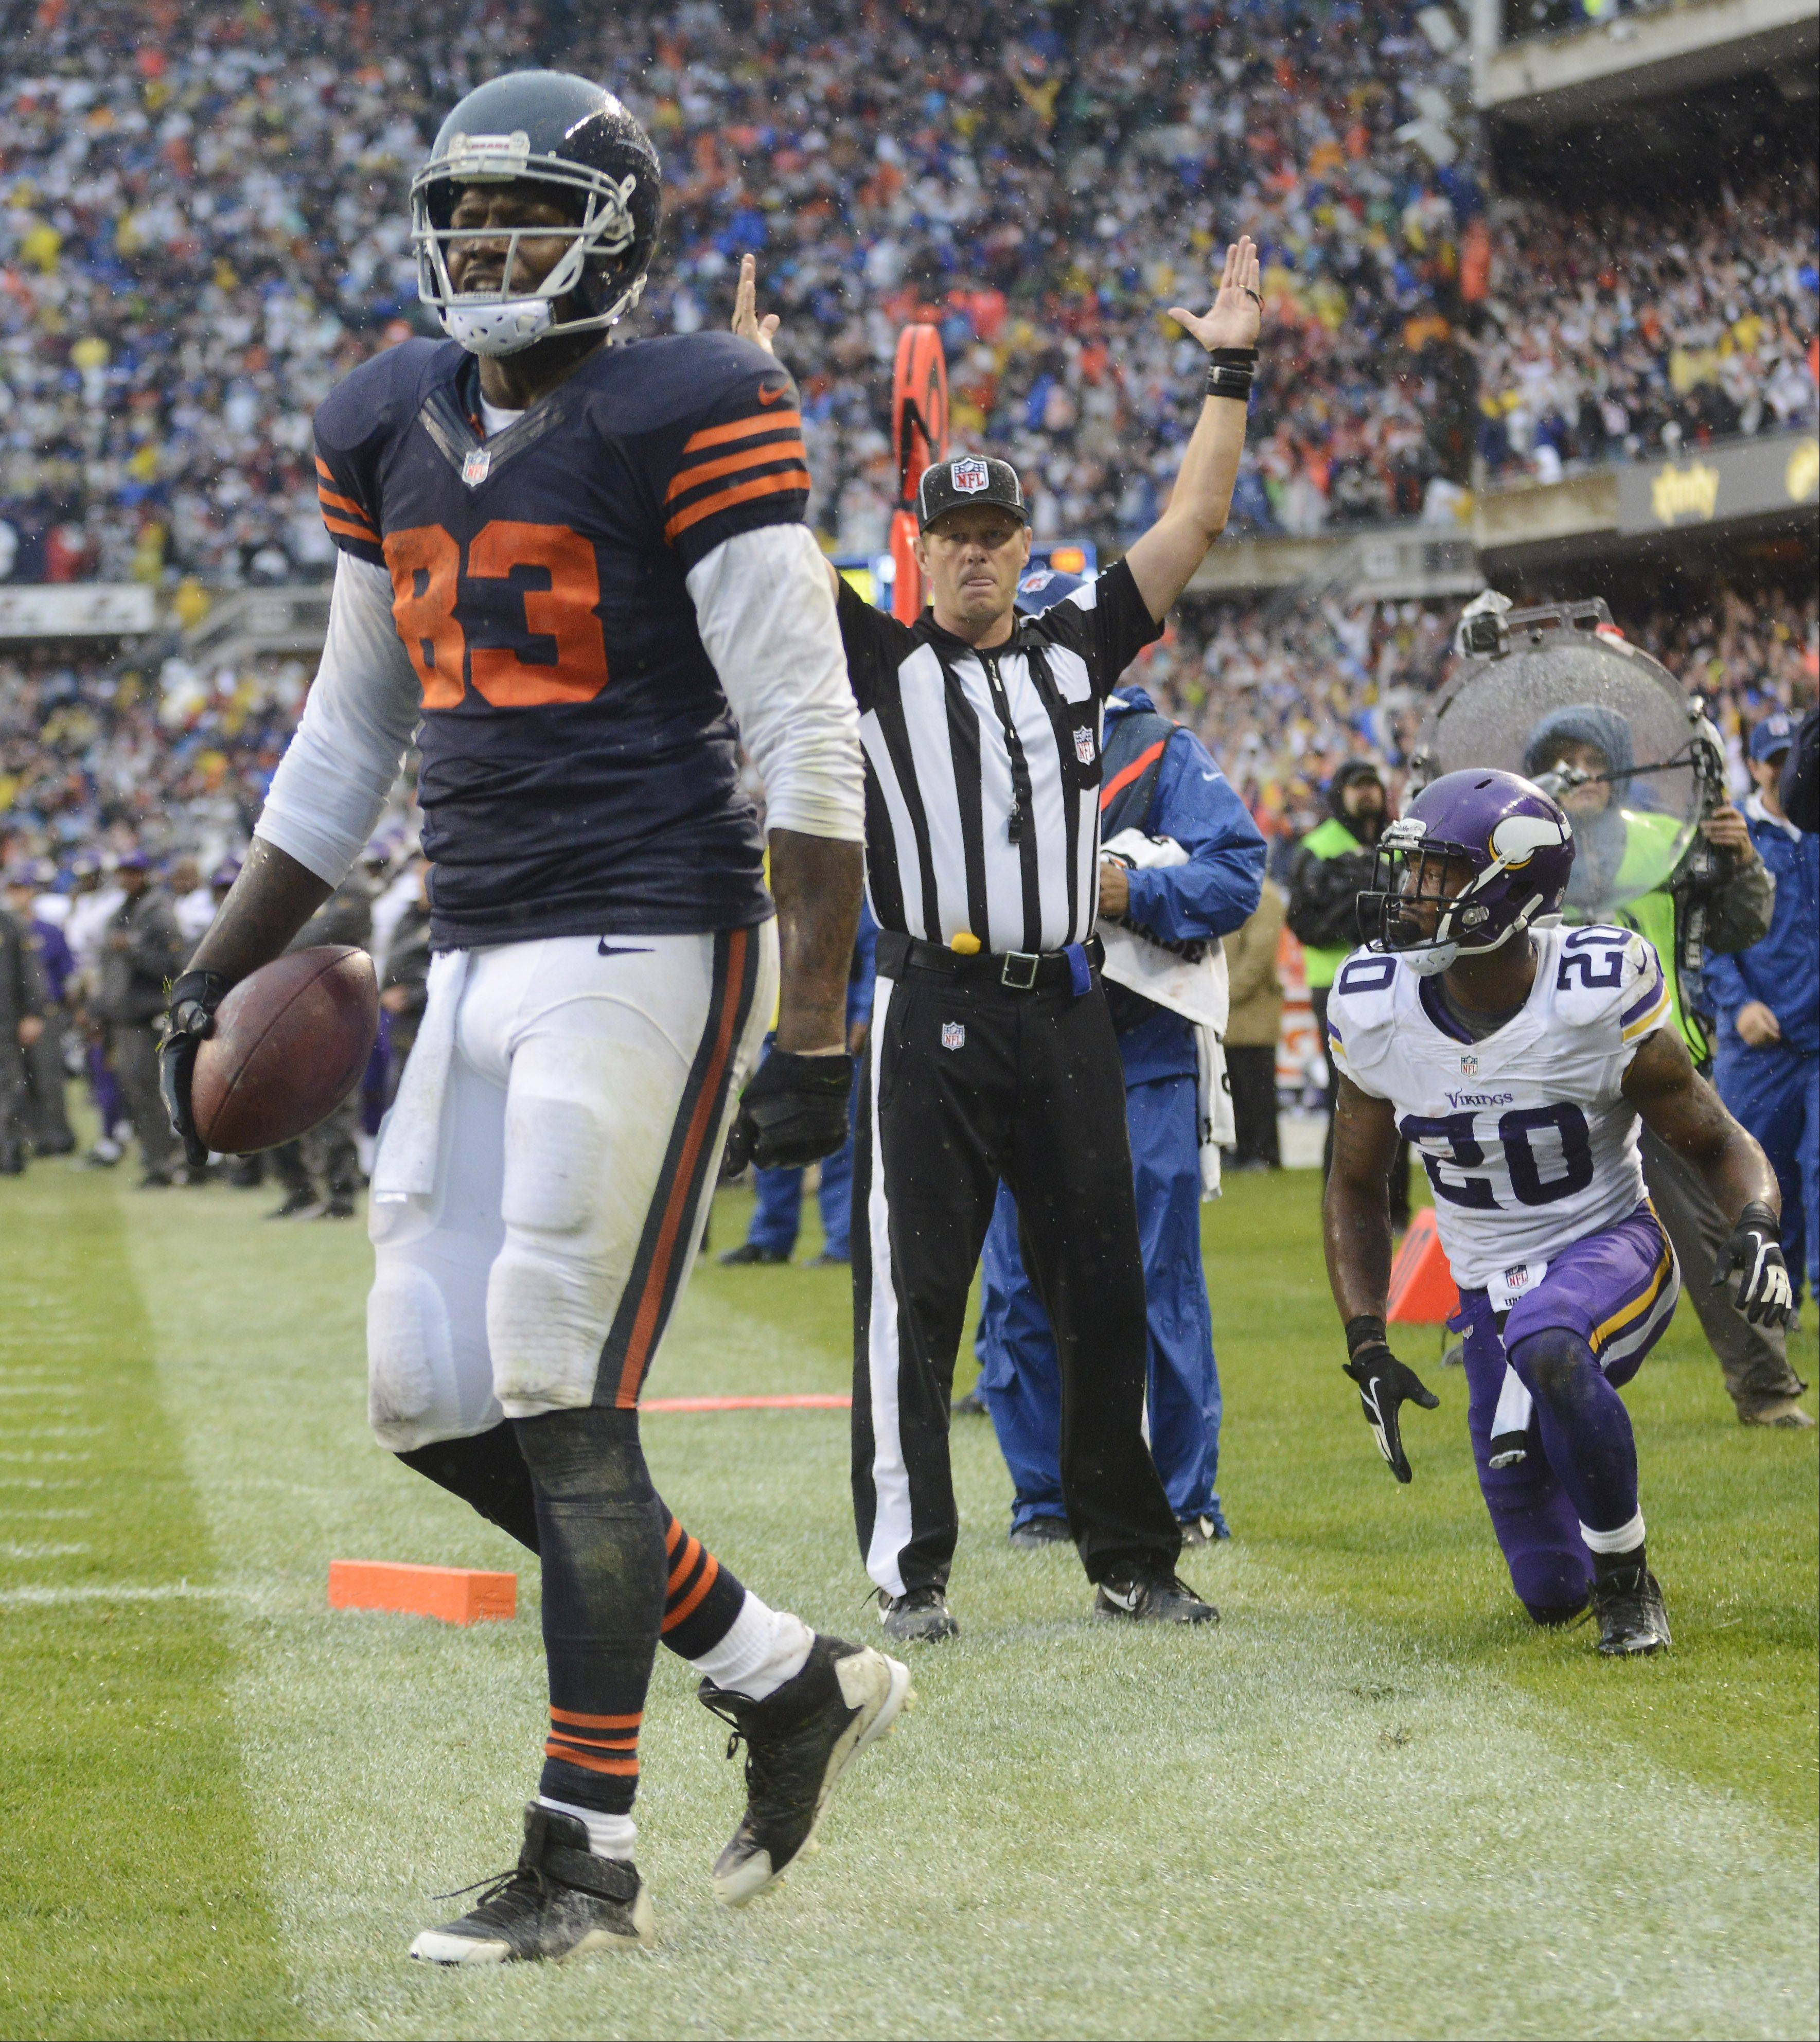 Bears tight end Martellus Bennett celebrates his touchdown catch in front of Minnesota Vikings cornerback Chris Cook with 10 seconds left Sunday at Soldier Field.